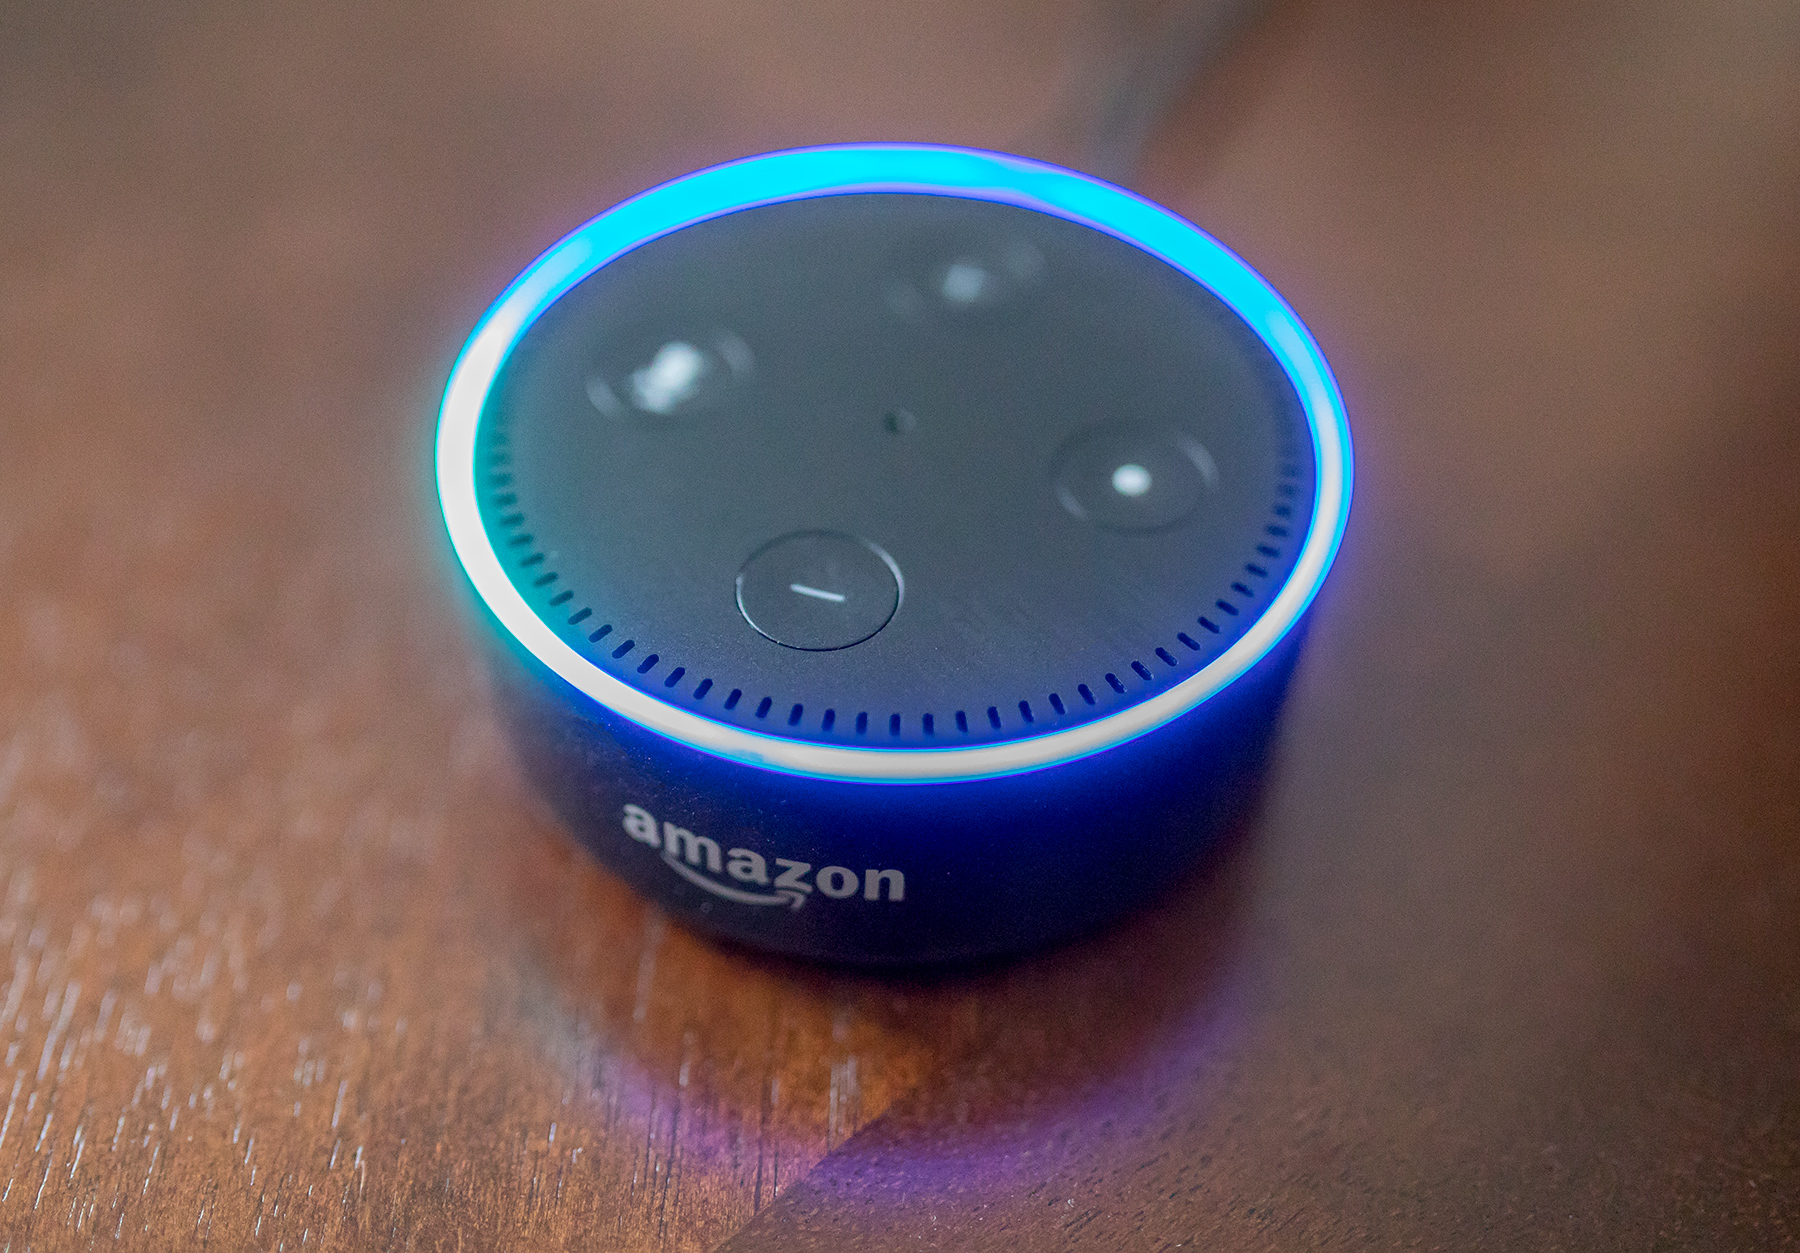 Amazon Alexa Gets New 'Brief Mode' That Keeps Responses Shorter